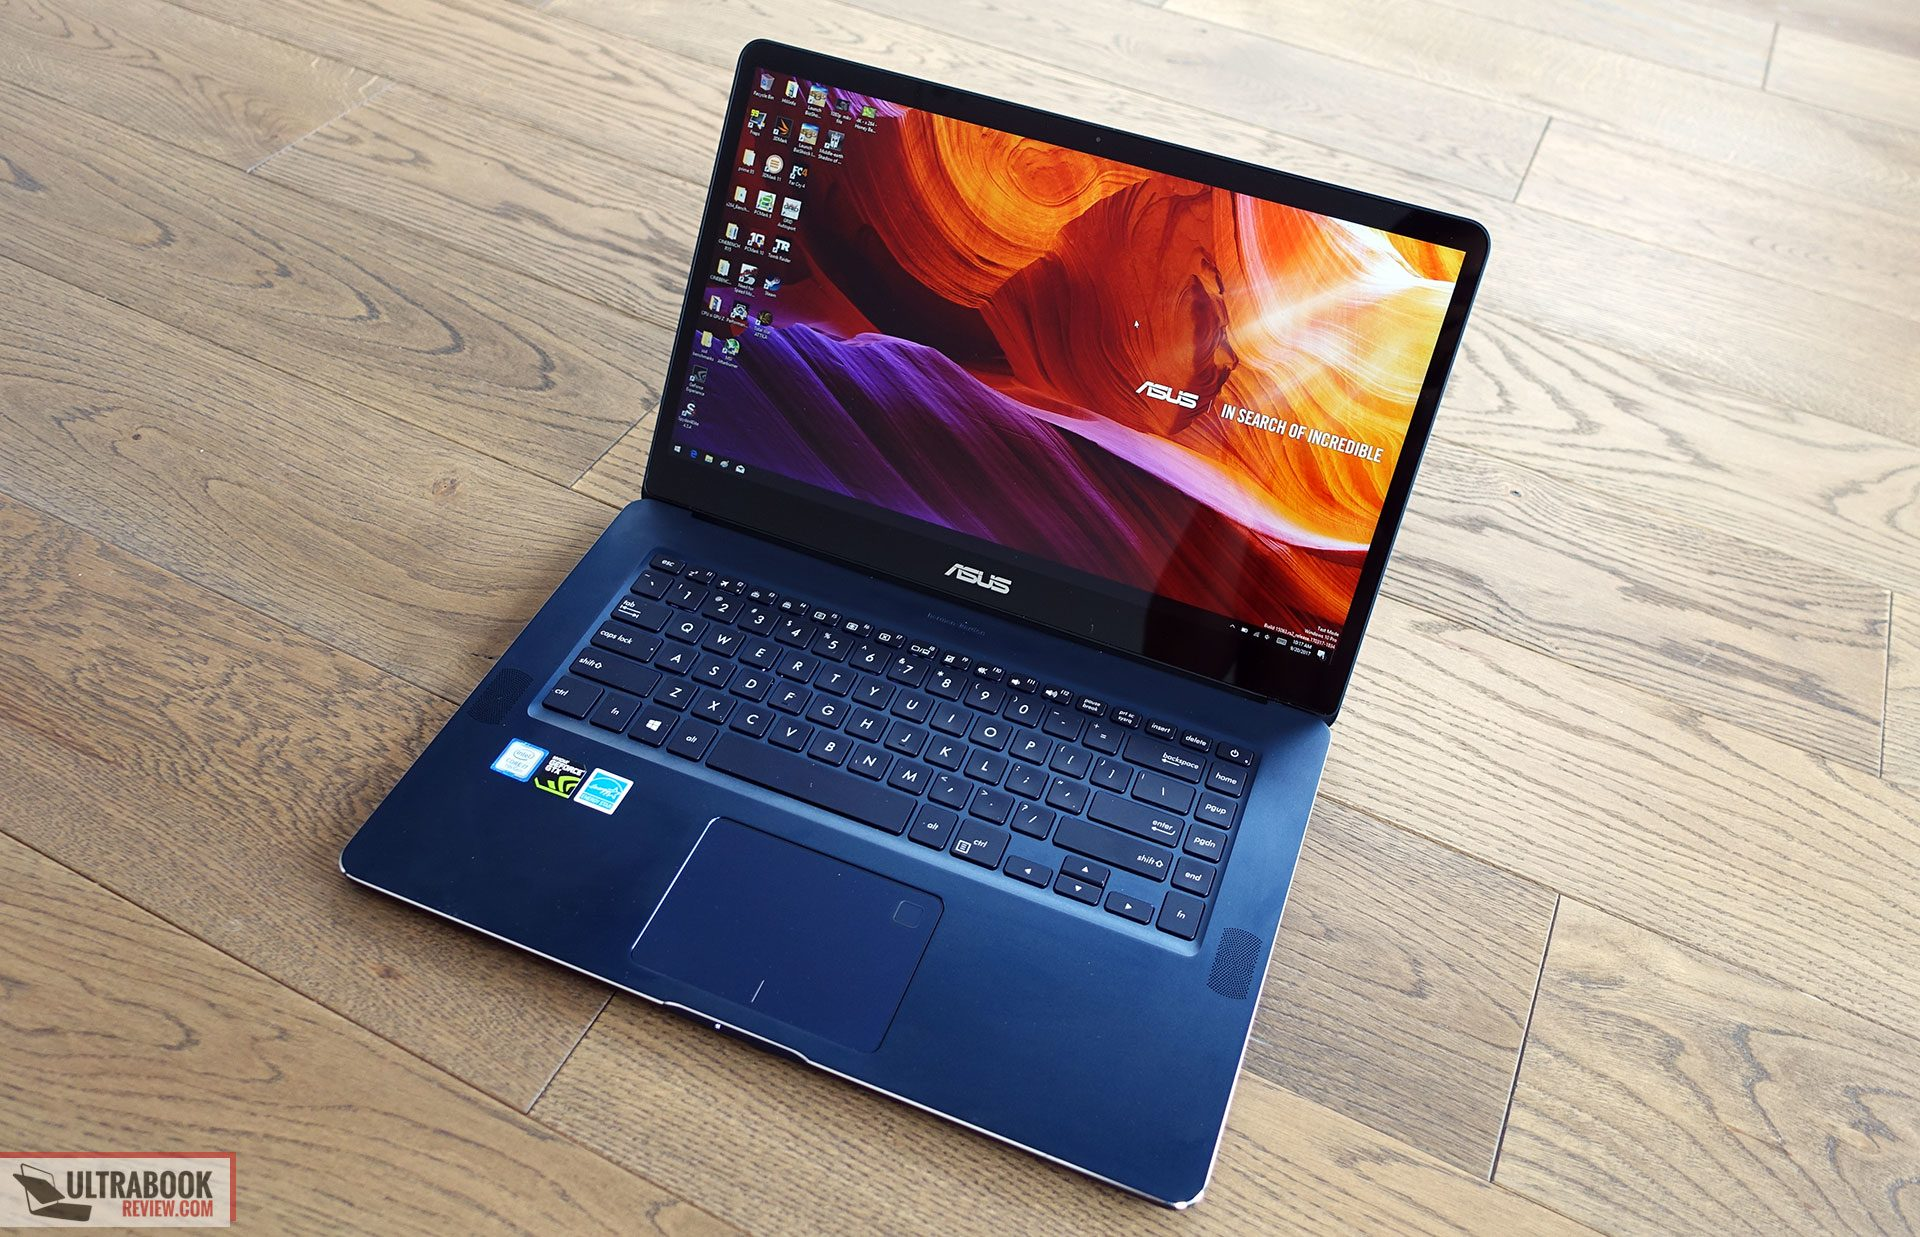 Asus Zenbook Ux550ve Review I7 7700hq Gtx 1050 Ti And